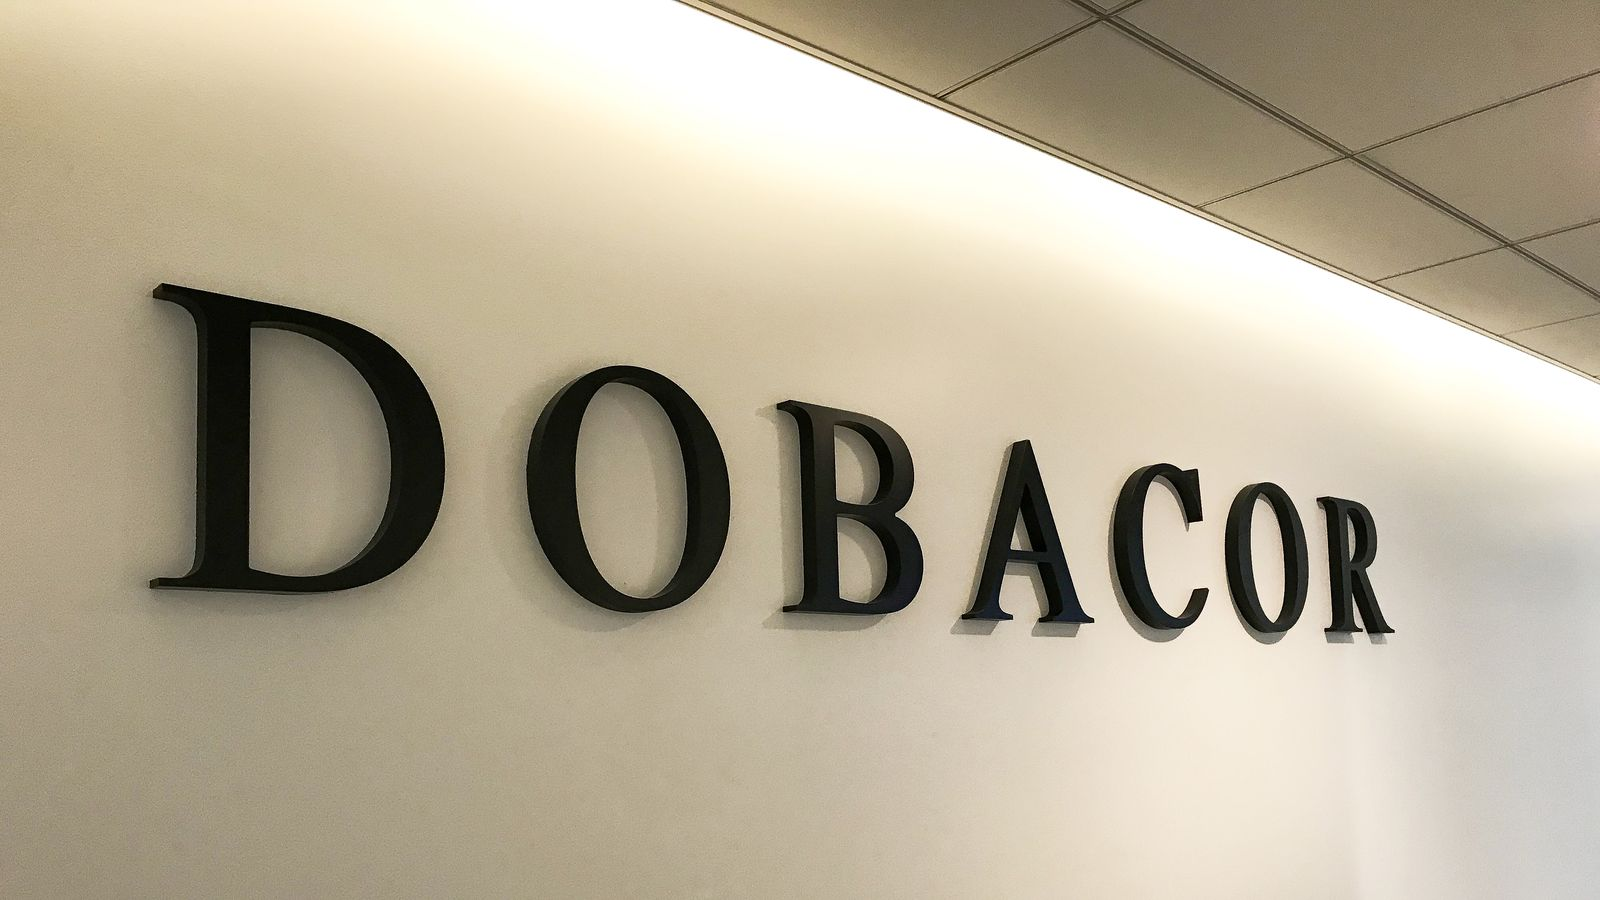 Dobacor 3d office sign in black color displaying the company name made of acrylic for interior branding